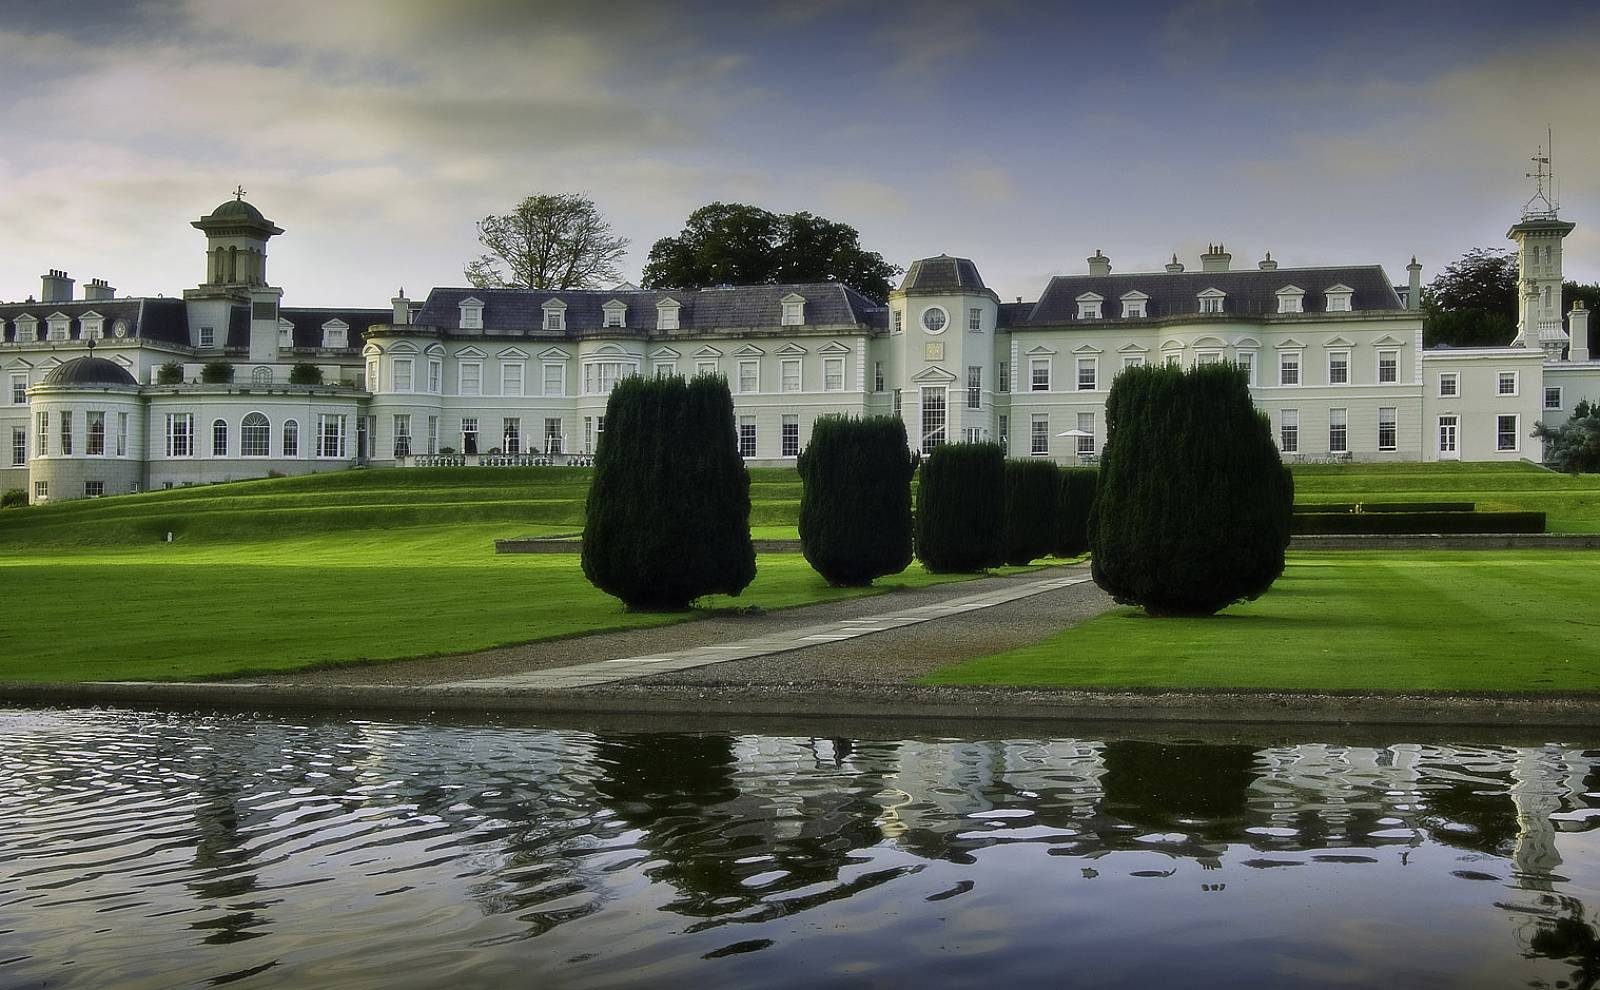 Luxury Hotels To Stay At In Dublin